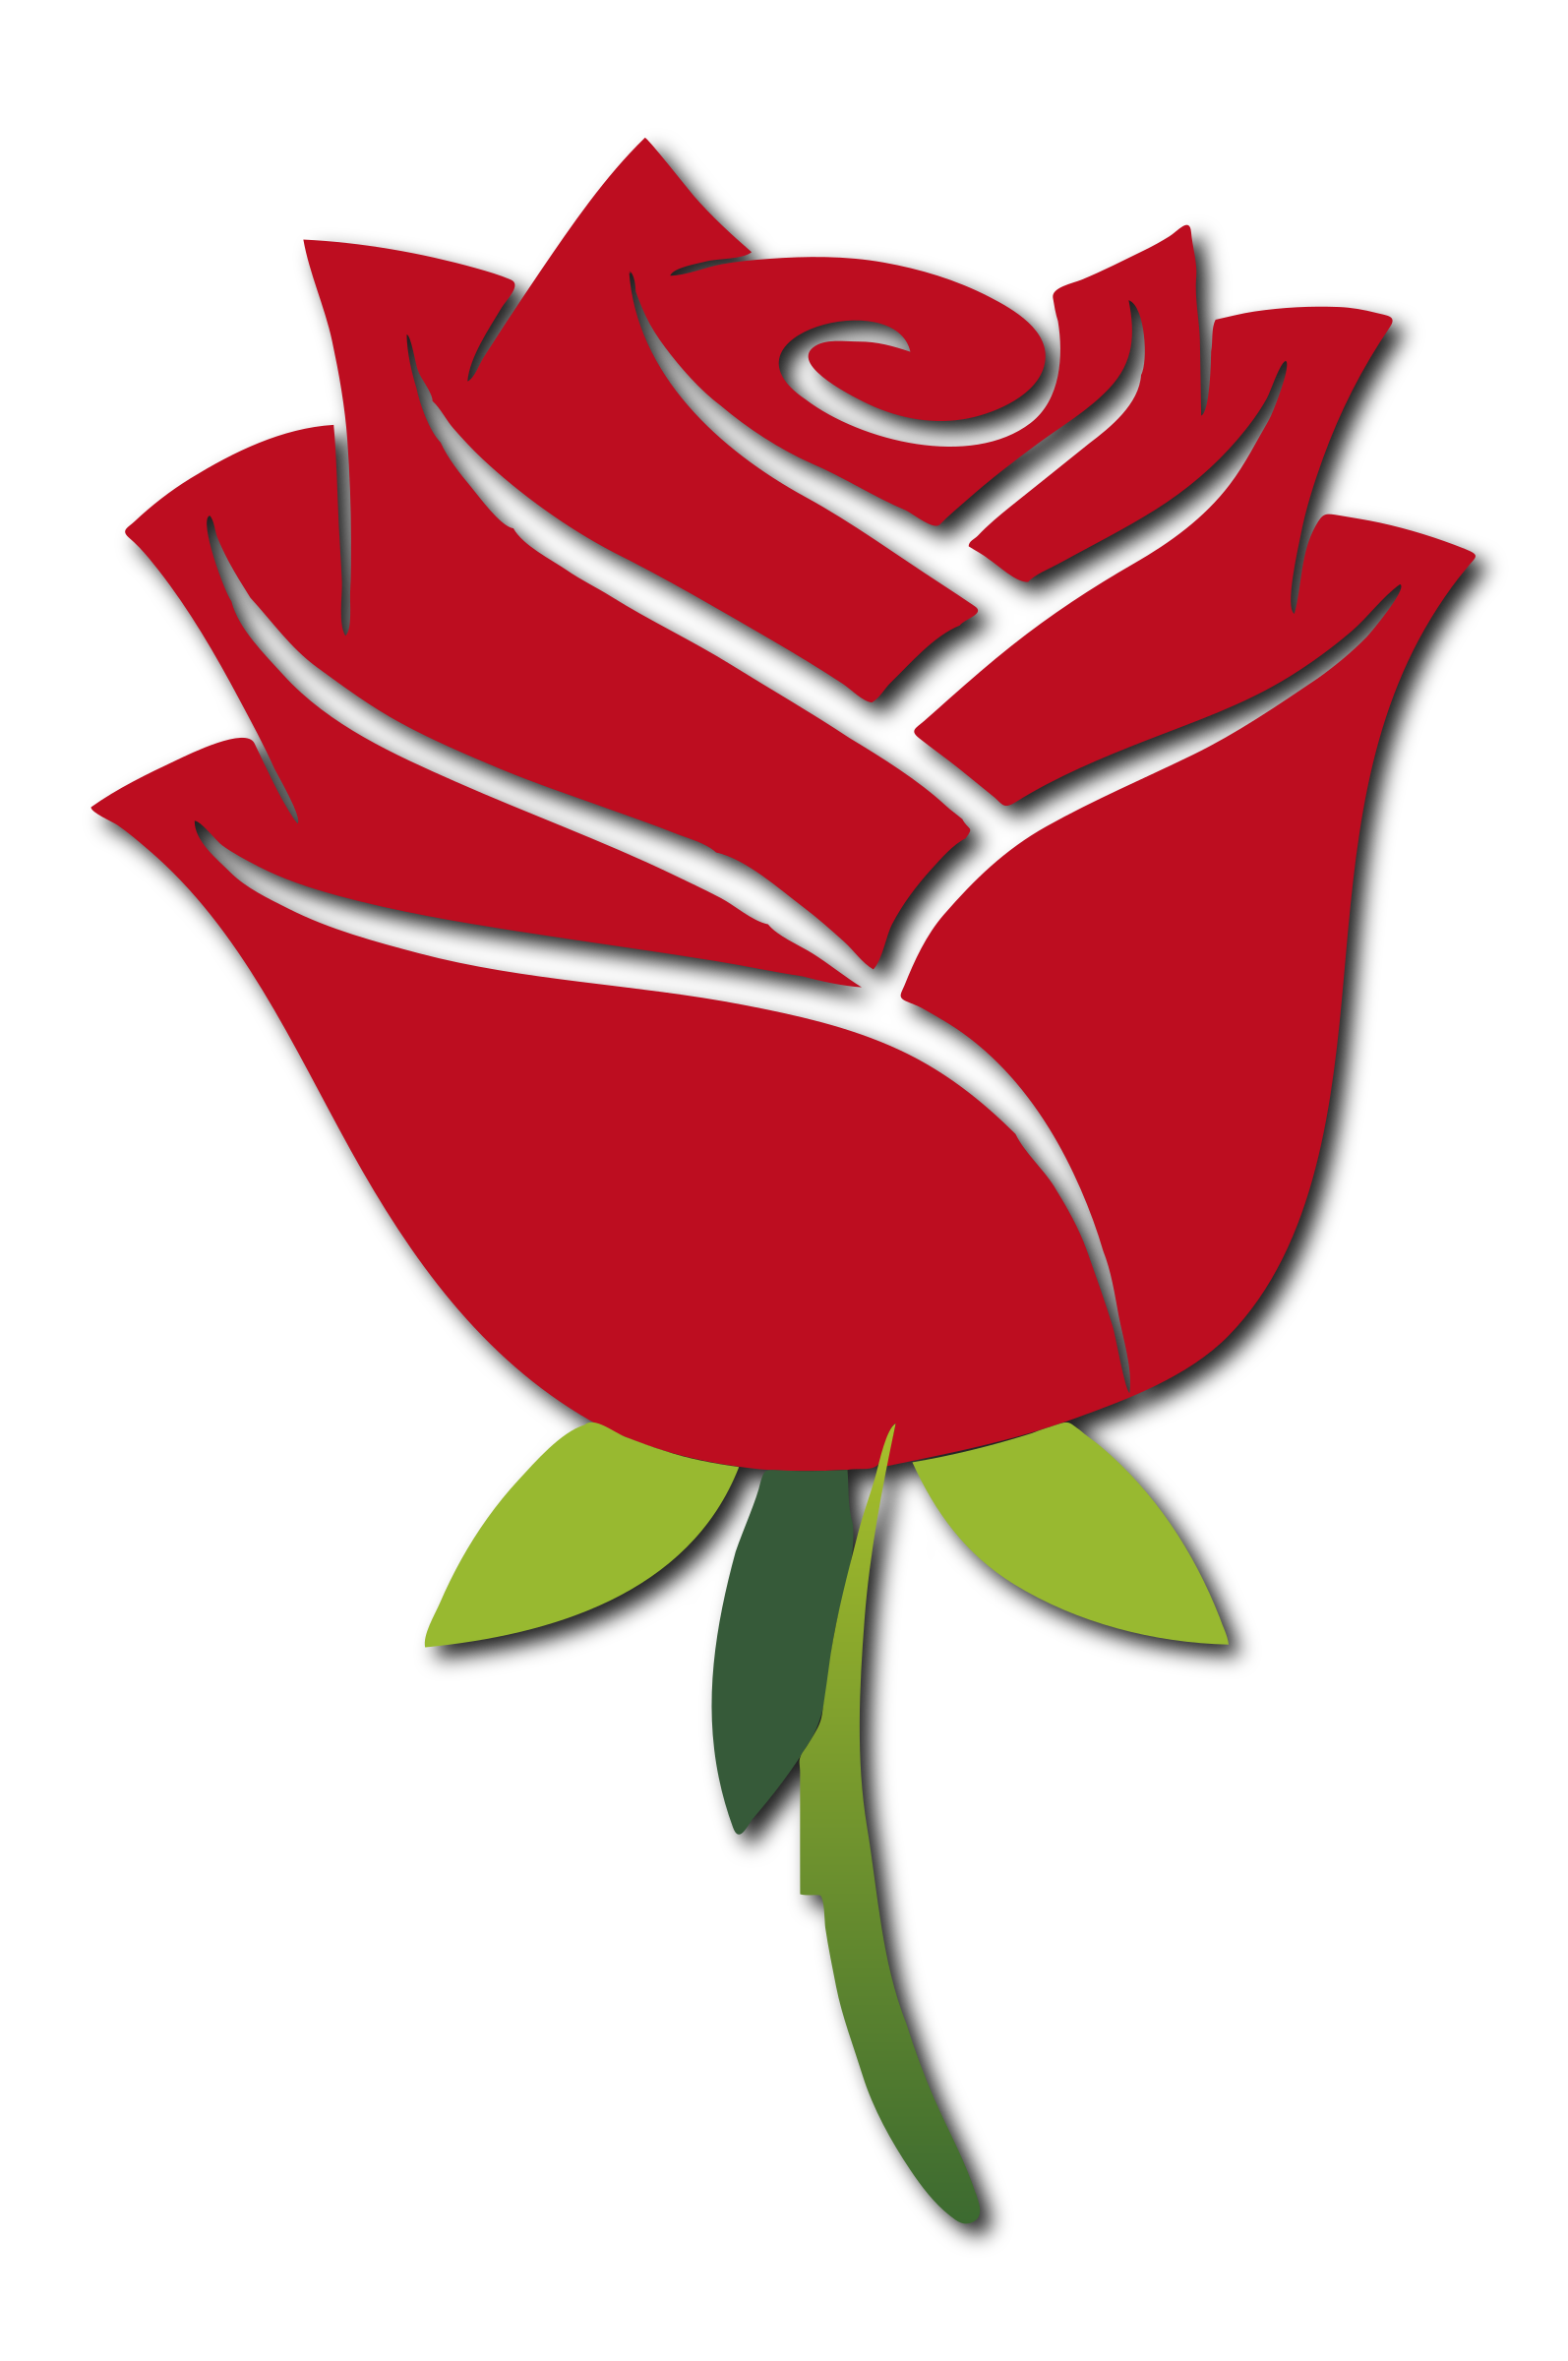 rose logo clipart 10 free Cliparts | Download images on ...